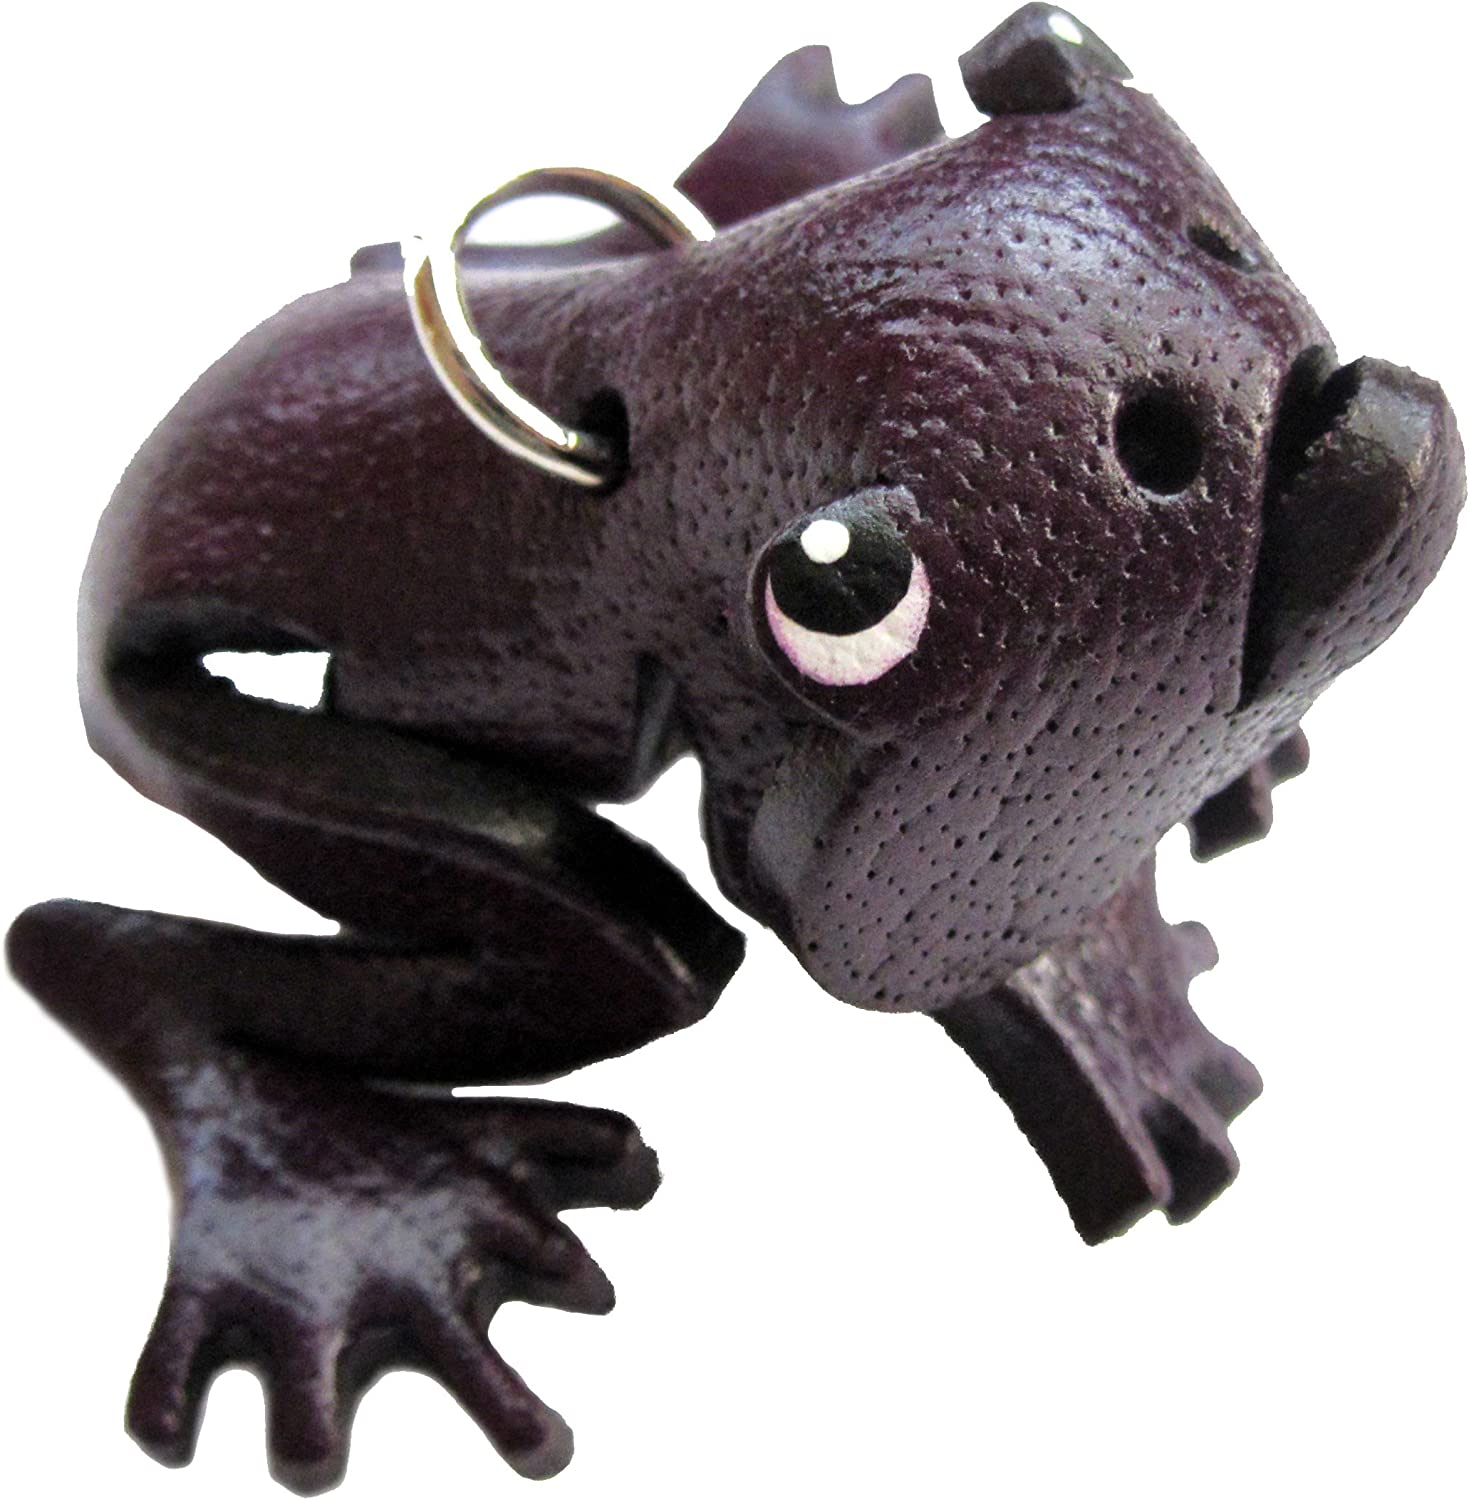 Frog Backpack Novelty Toy Fob Purple Leather Zipper Pull Charms Item 4056